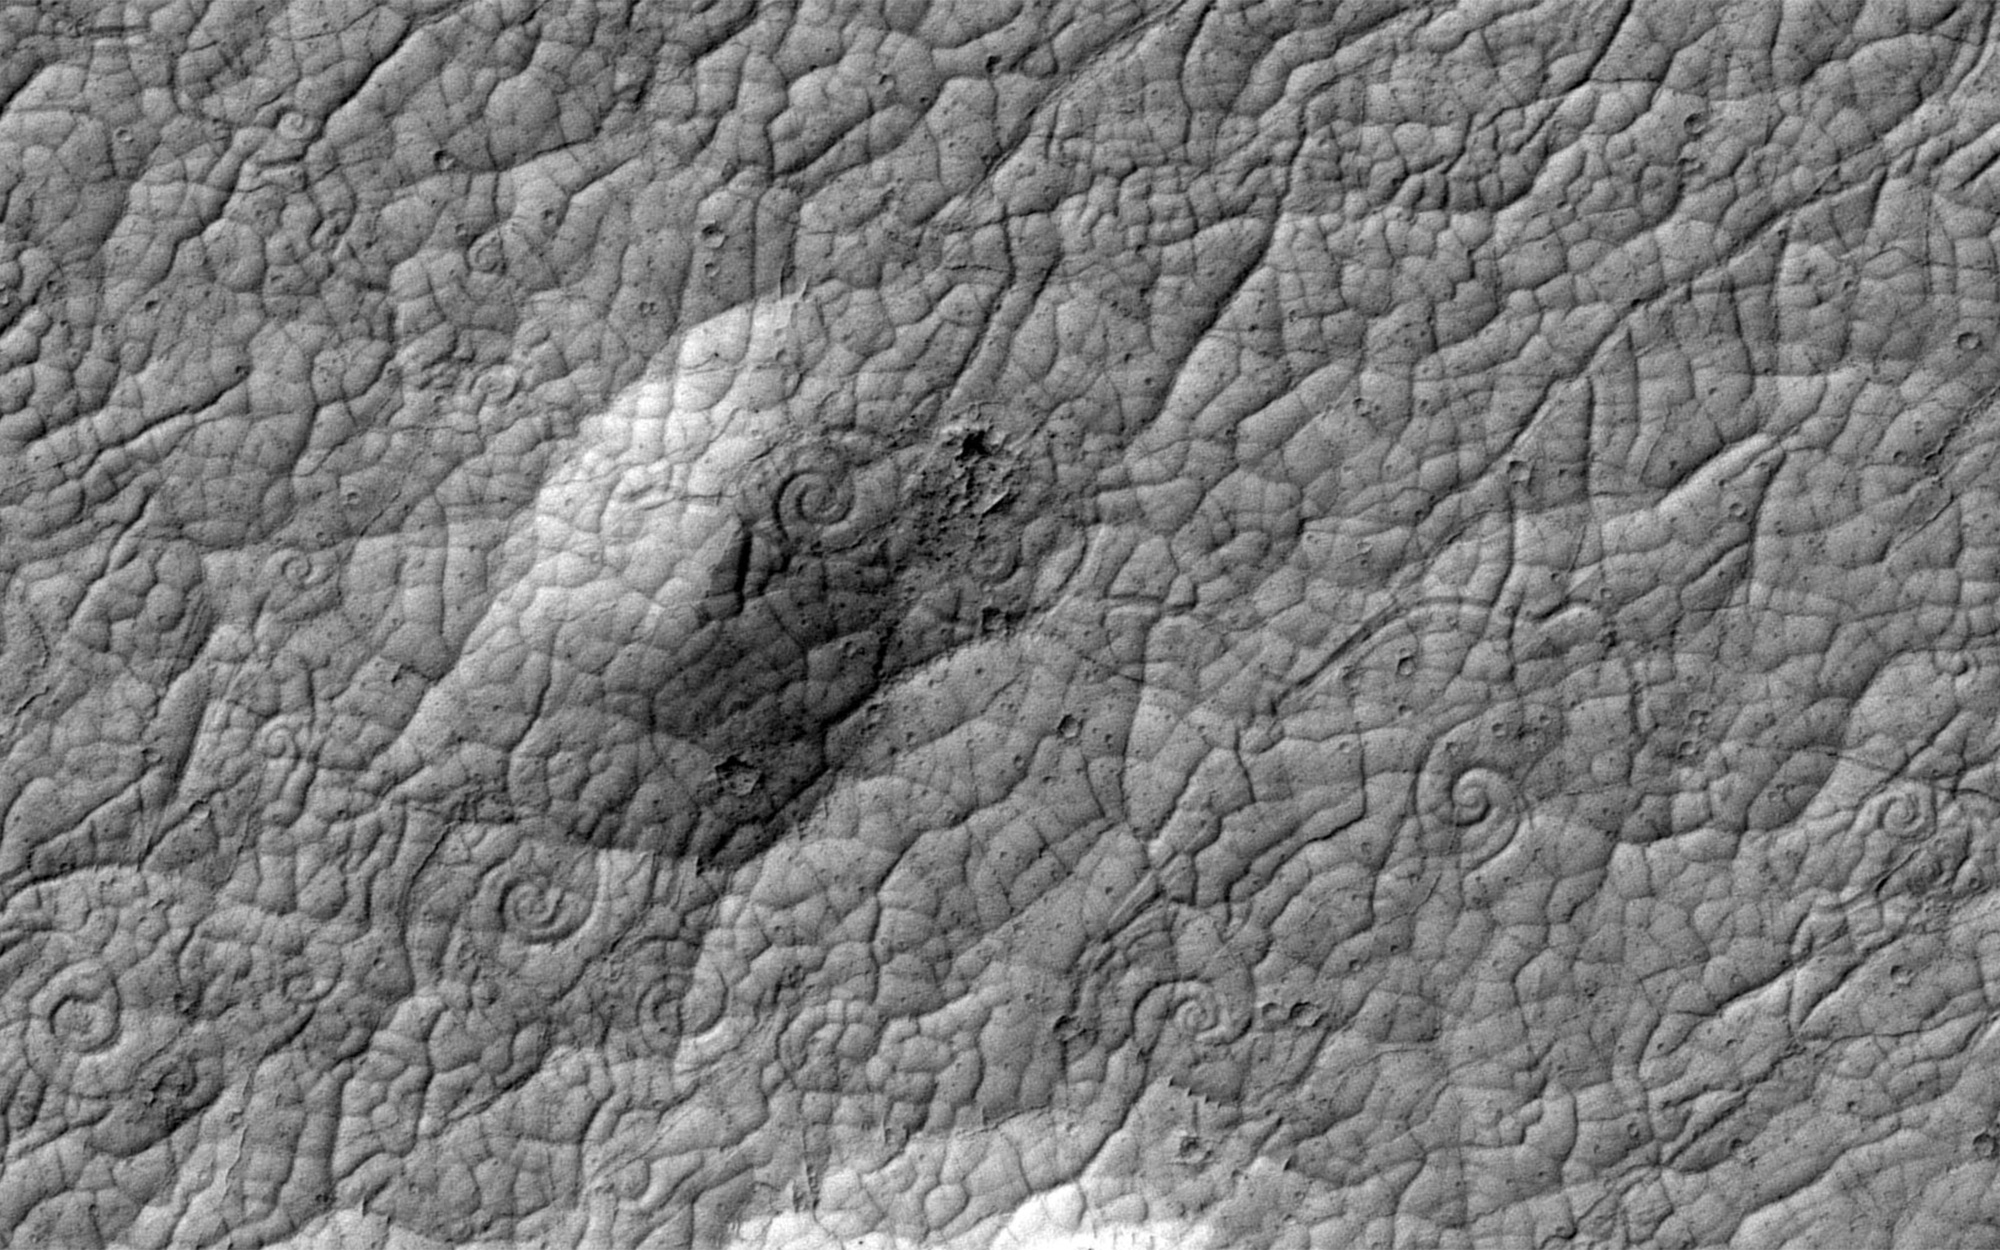 Grey images of Mars' surface showing lava flows.